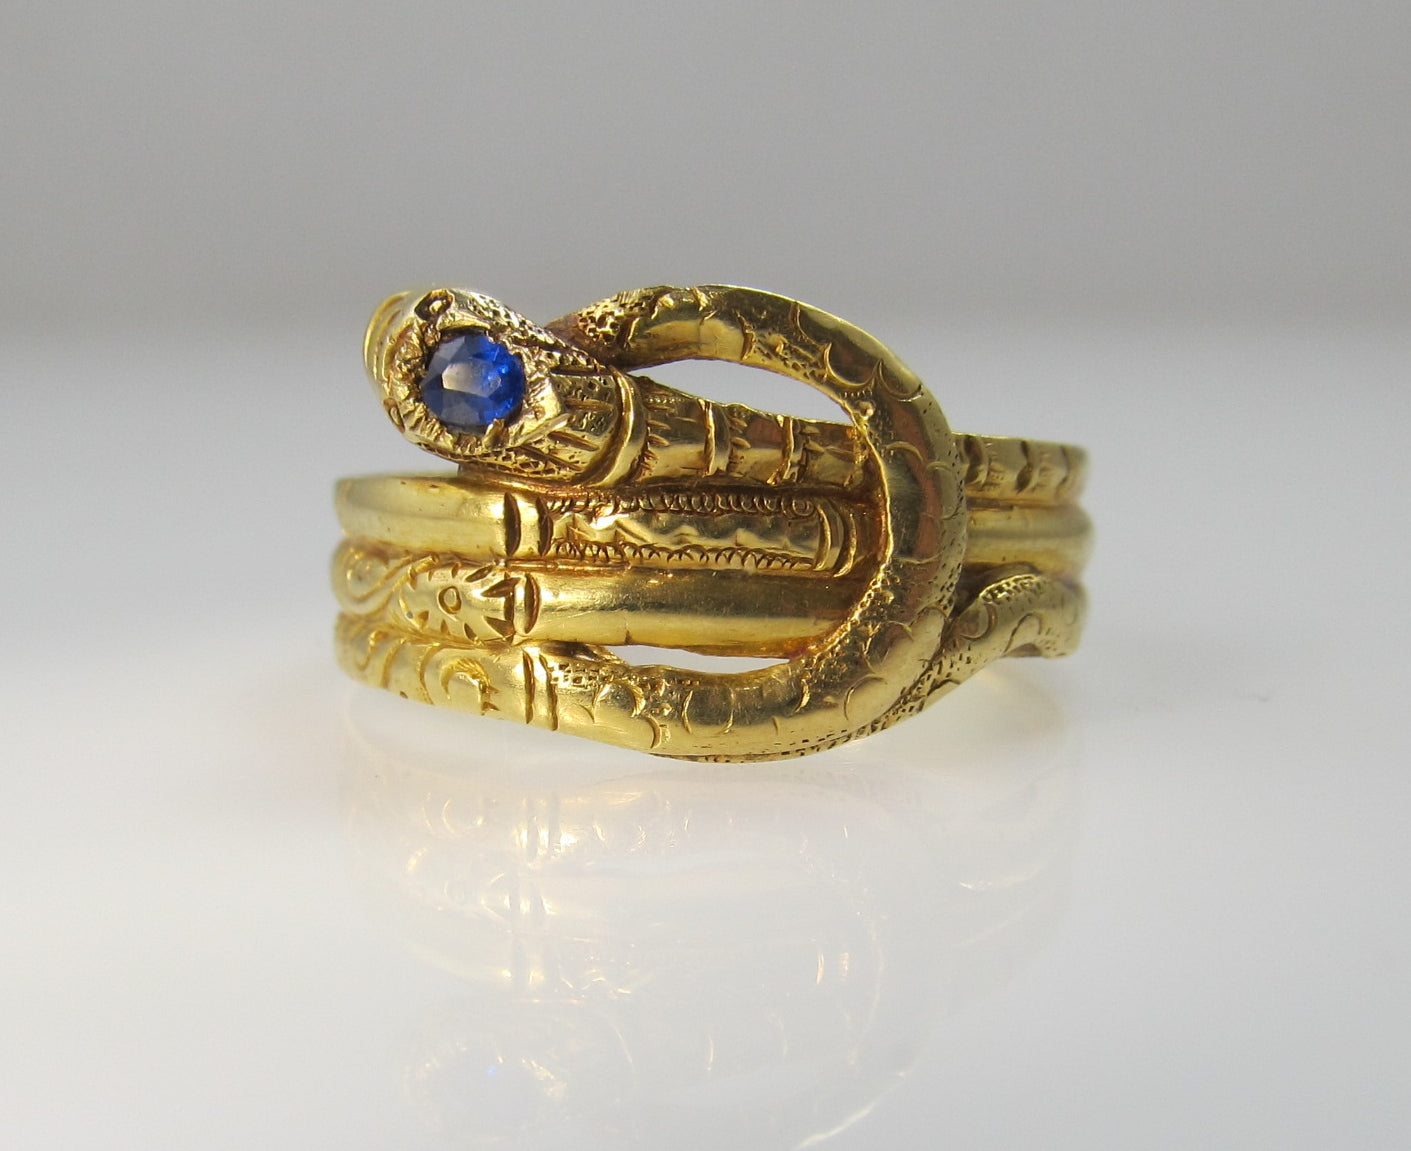 Early Victorian 14k wrapped snake ring with a sapphire